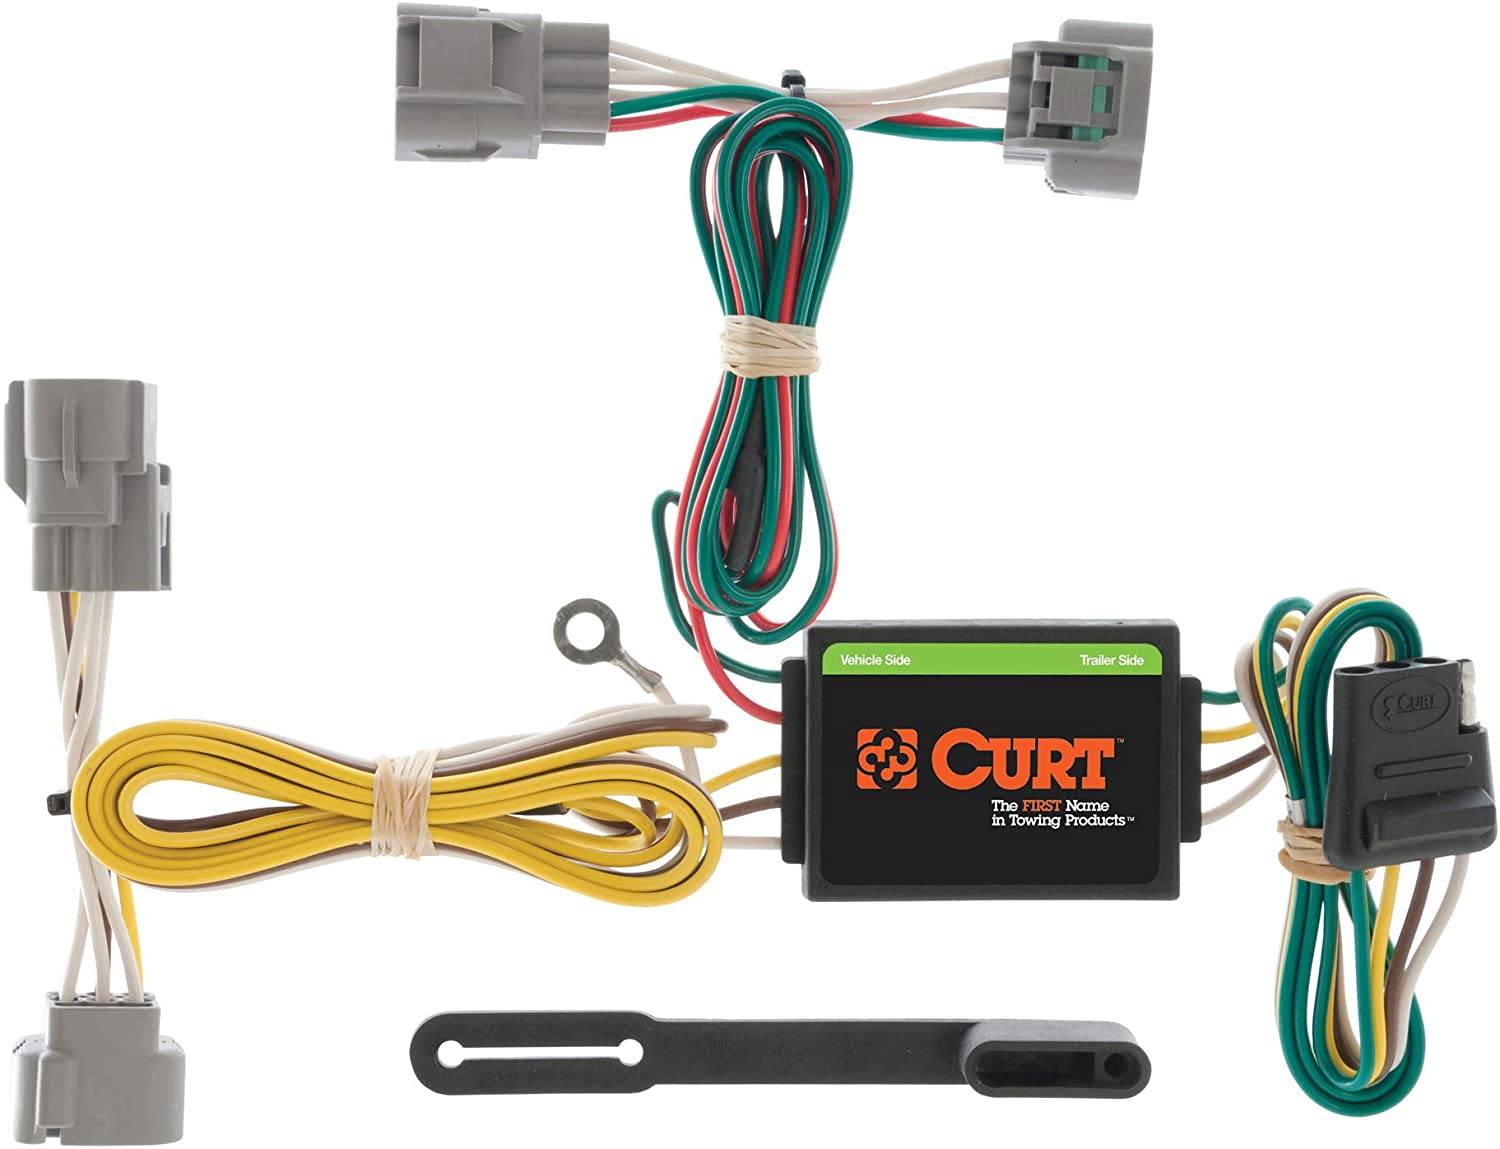 2005 Toyota Tacoma Trailer Wiring Harness from images-na.ssl-images-amazon.com